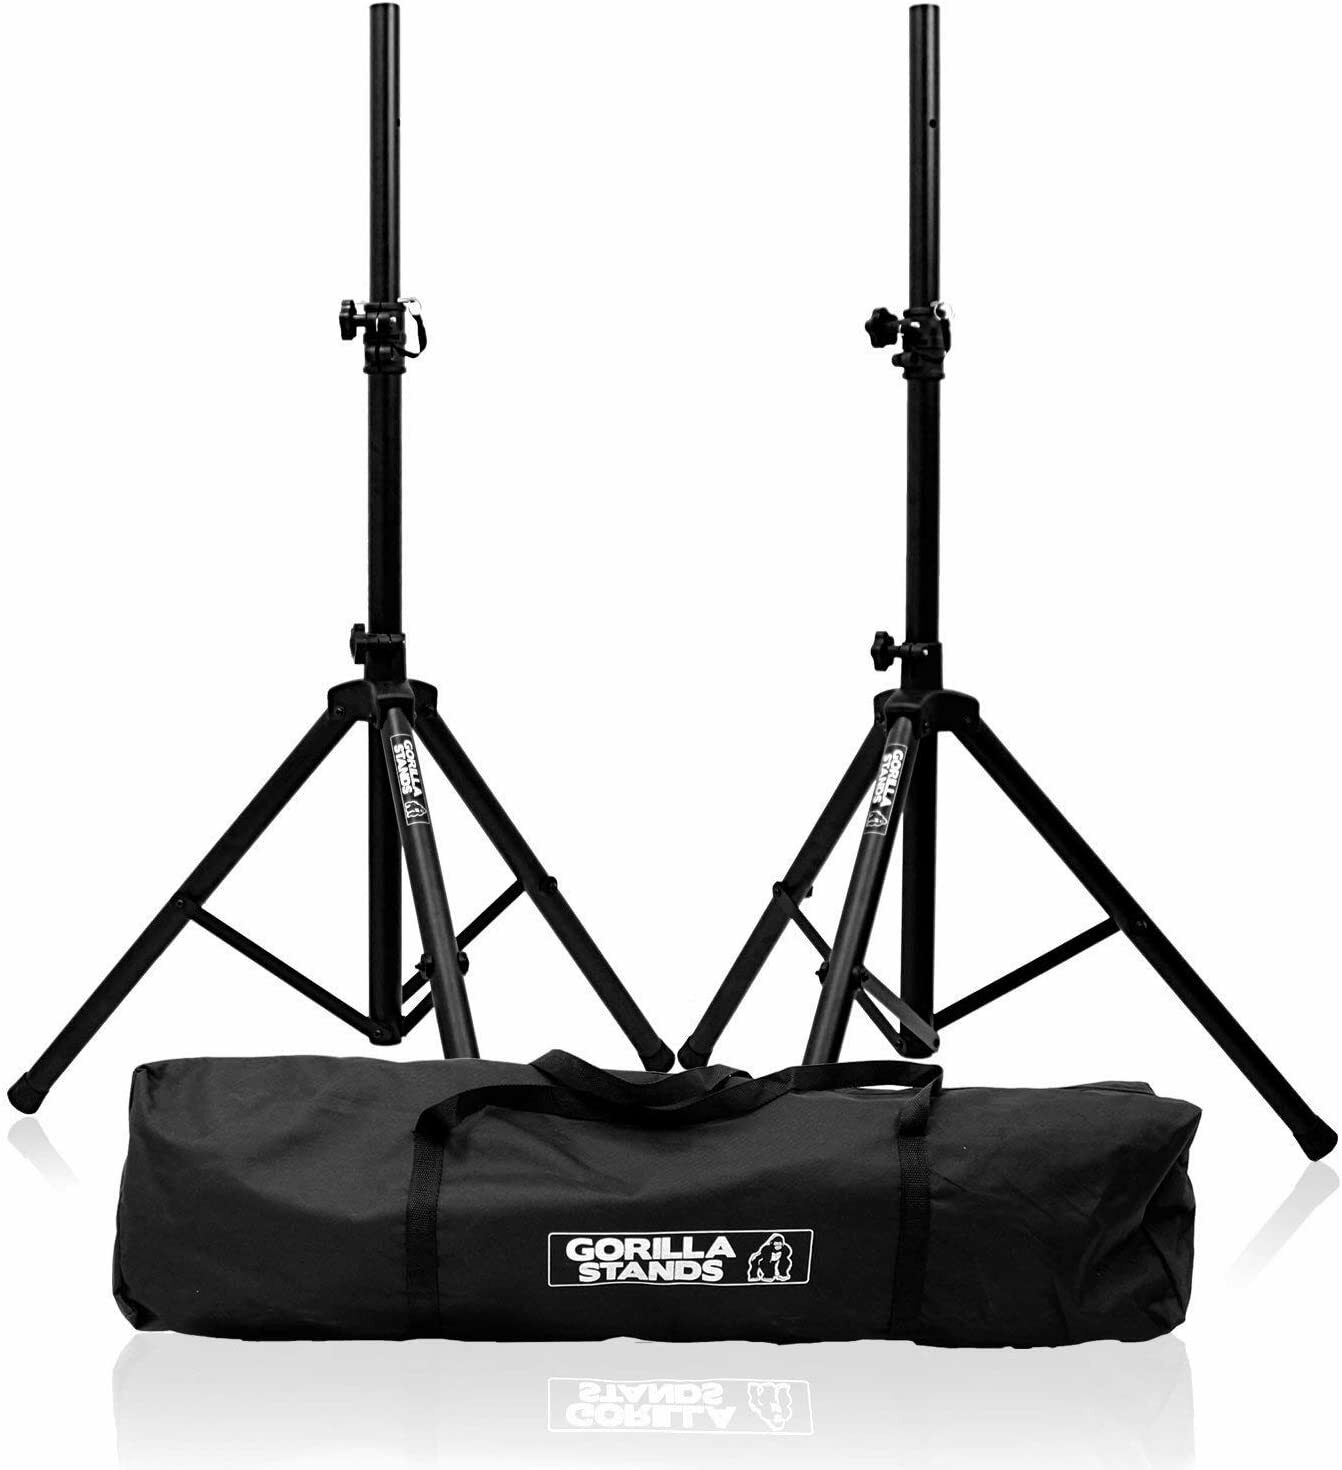 Gorilla Stands High GSS-KI Quality PA Speaker Tripod Stands kit with Bag Stand